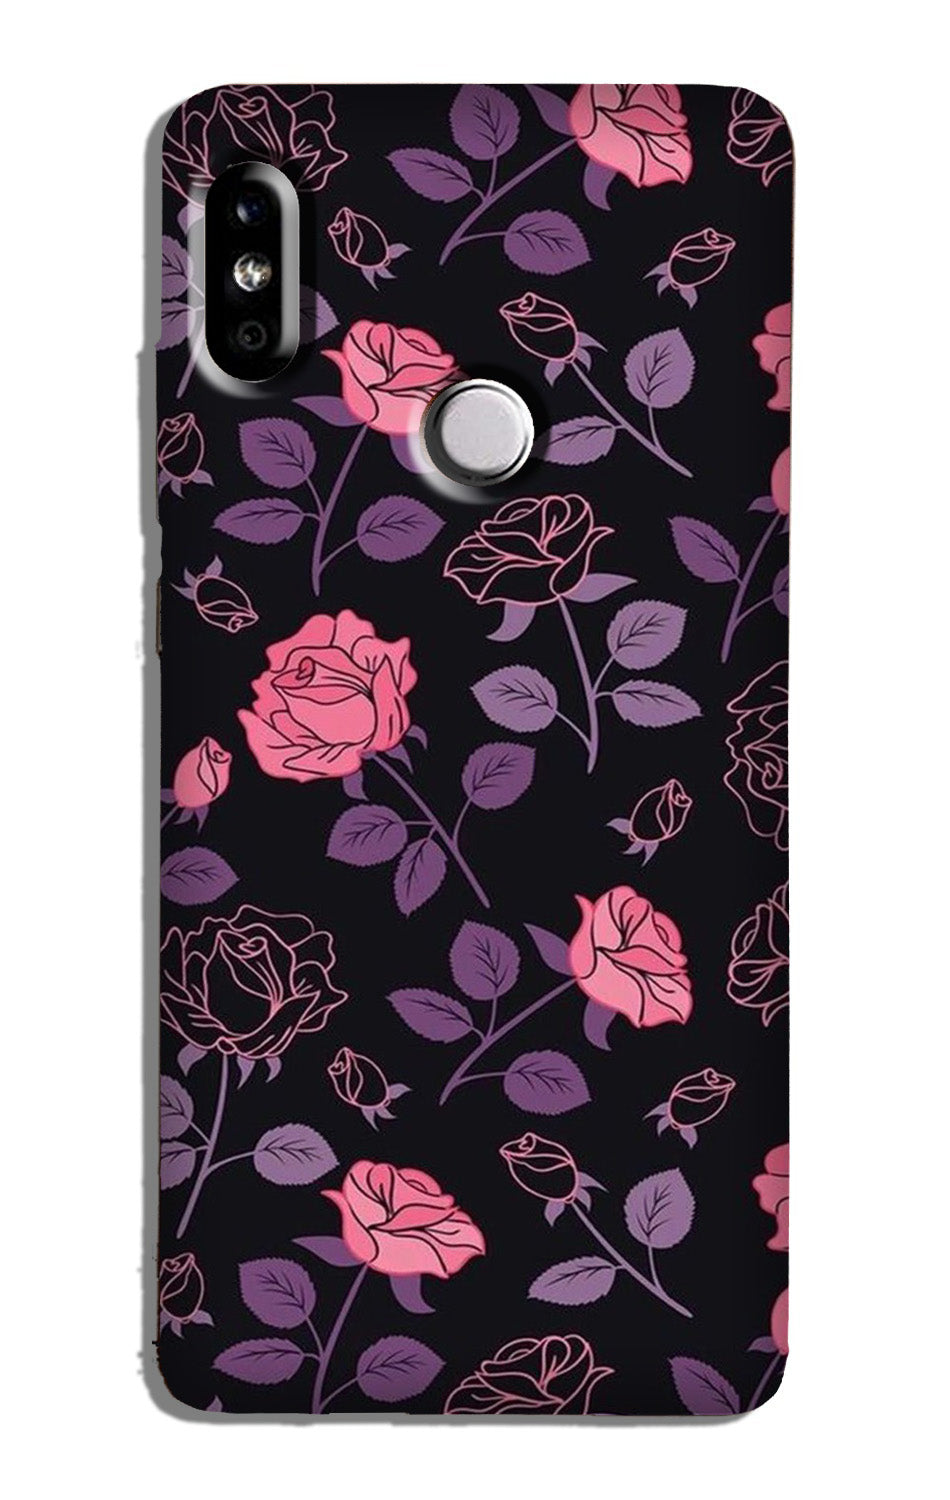 Rose Pattern Case for Redmi 6 Pro